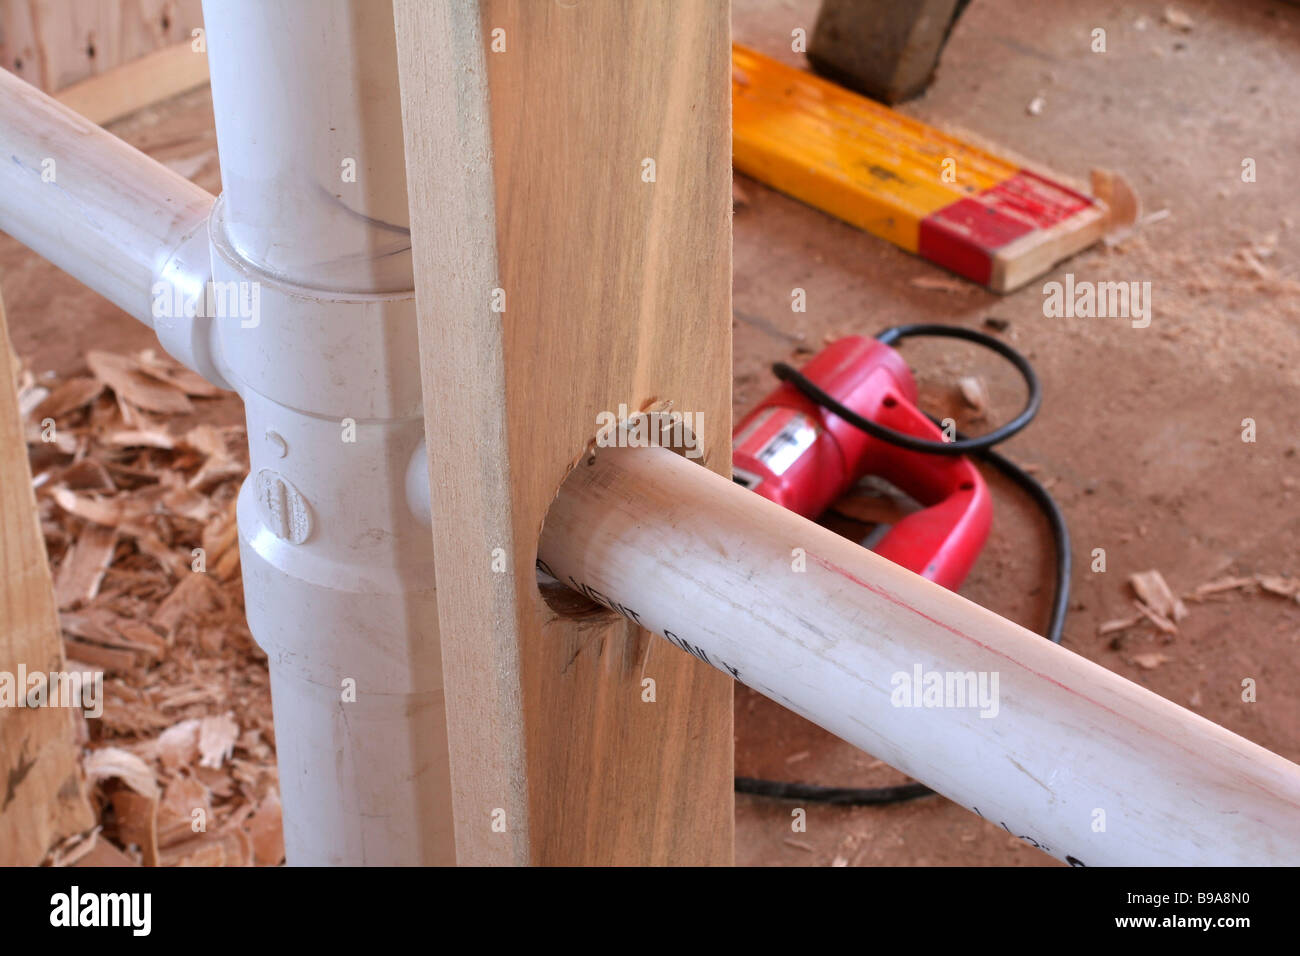 Rough plumbing in new home construction Stock Photo: 22968652 - Alamy